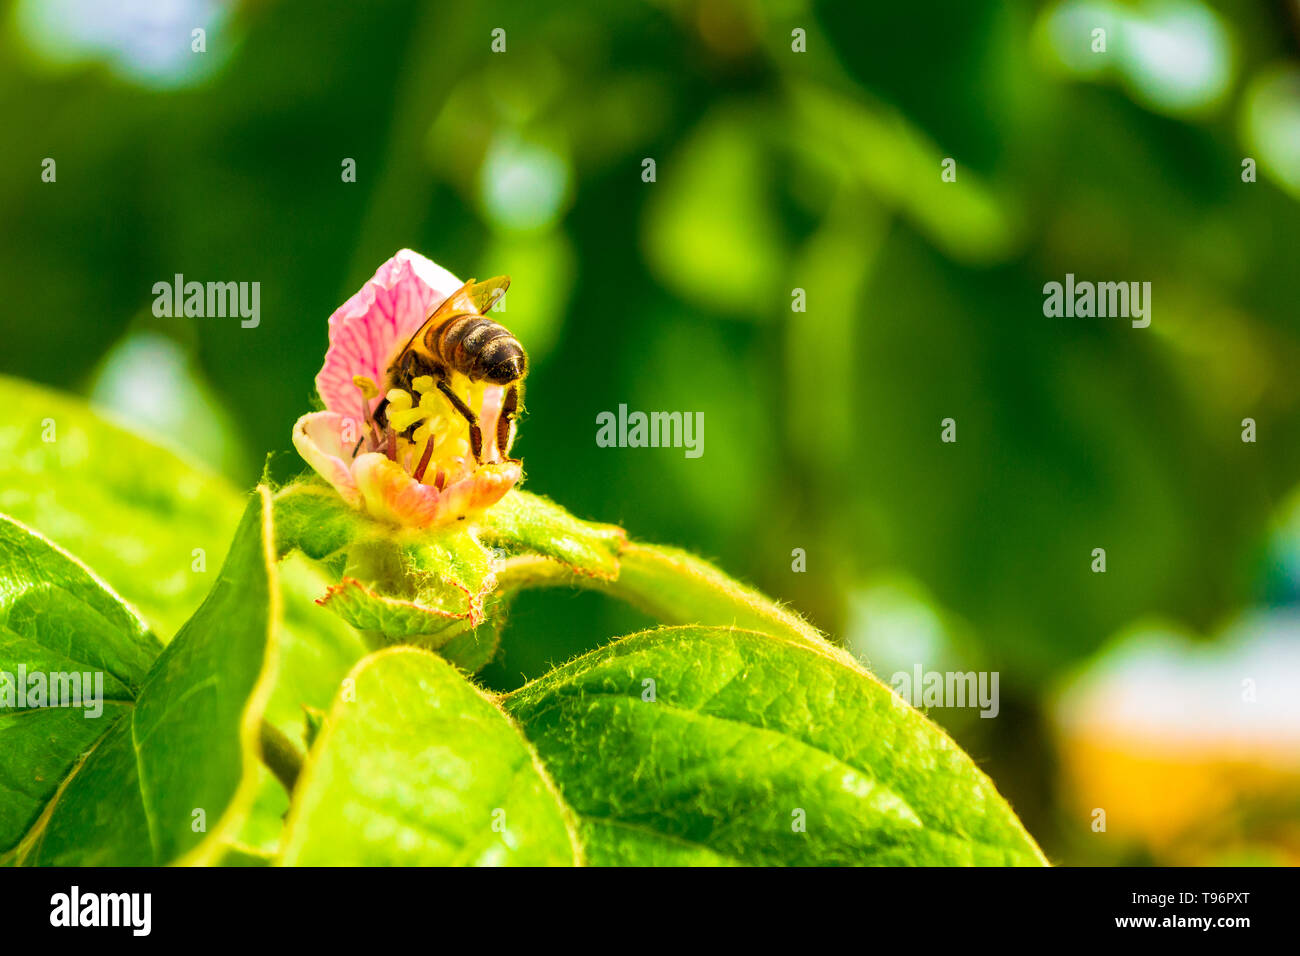 Western honey bee (Apis mellifera) inside a pink quince flower, with its rear sting upwards, defensively, collecting nectar and pollen to produce mult - Stock Image